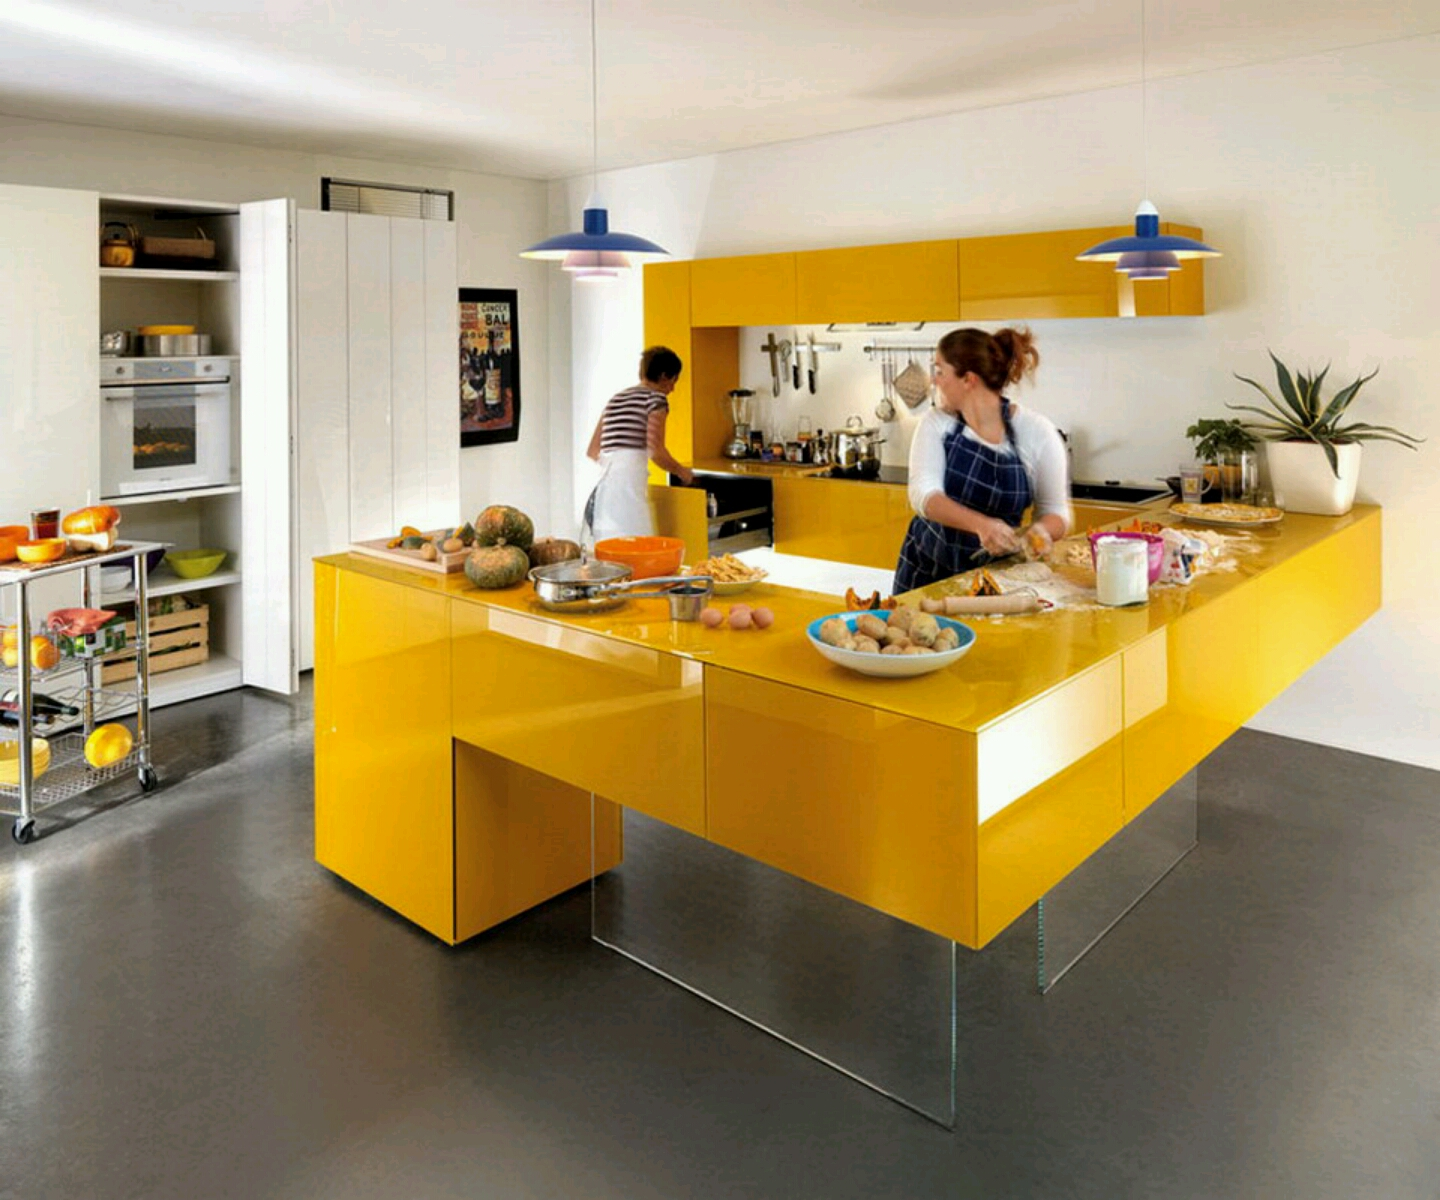 Modern kitchen cabinets designs ideas furniture gallery for Modern kitchen furniture images